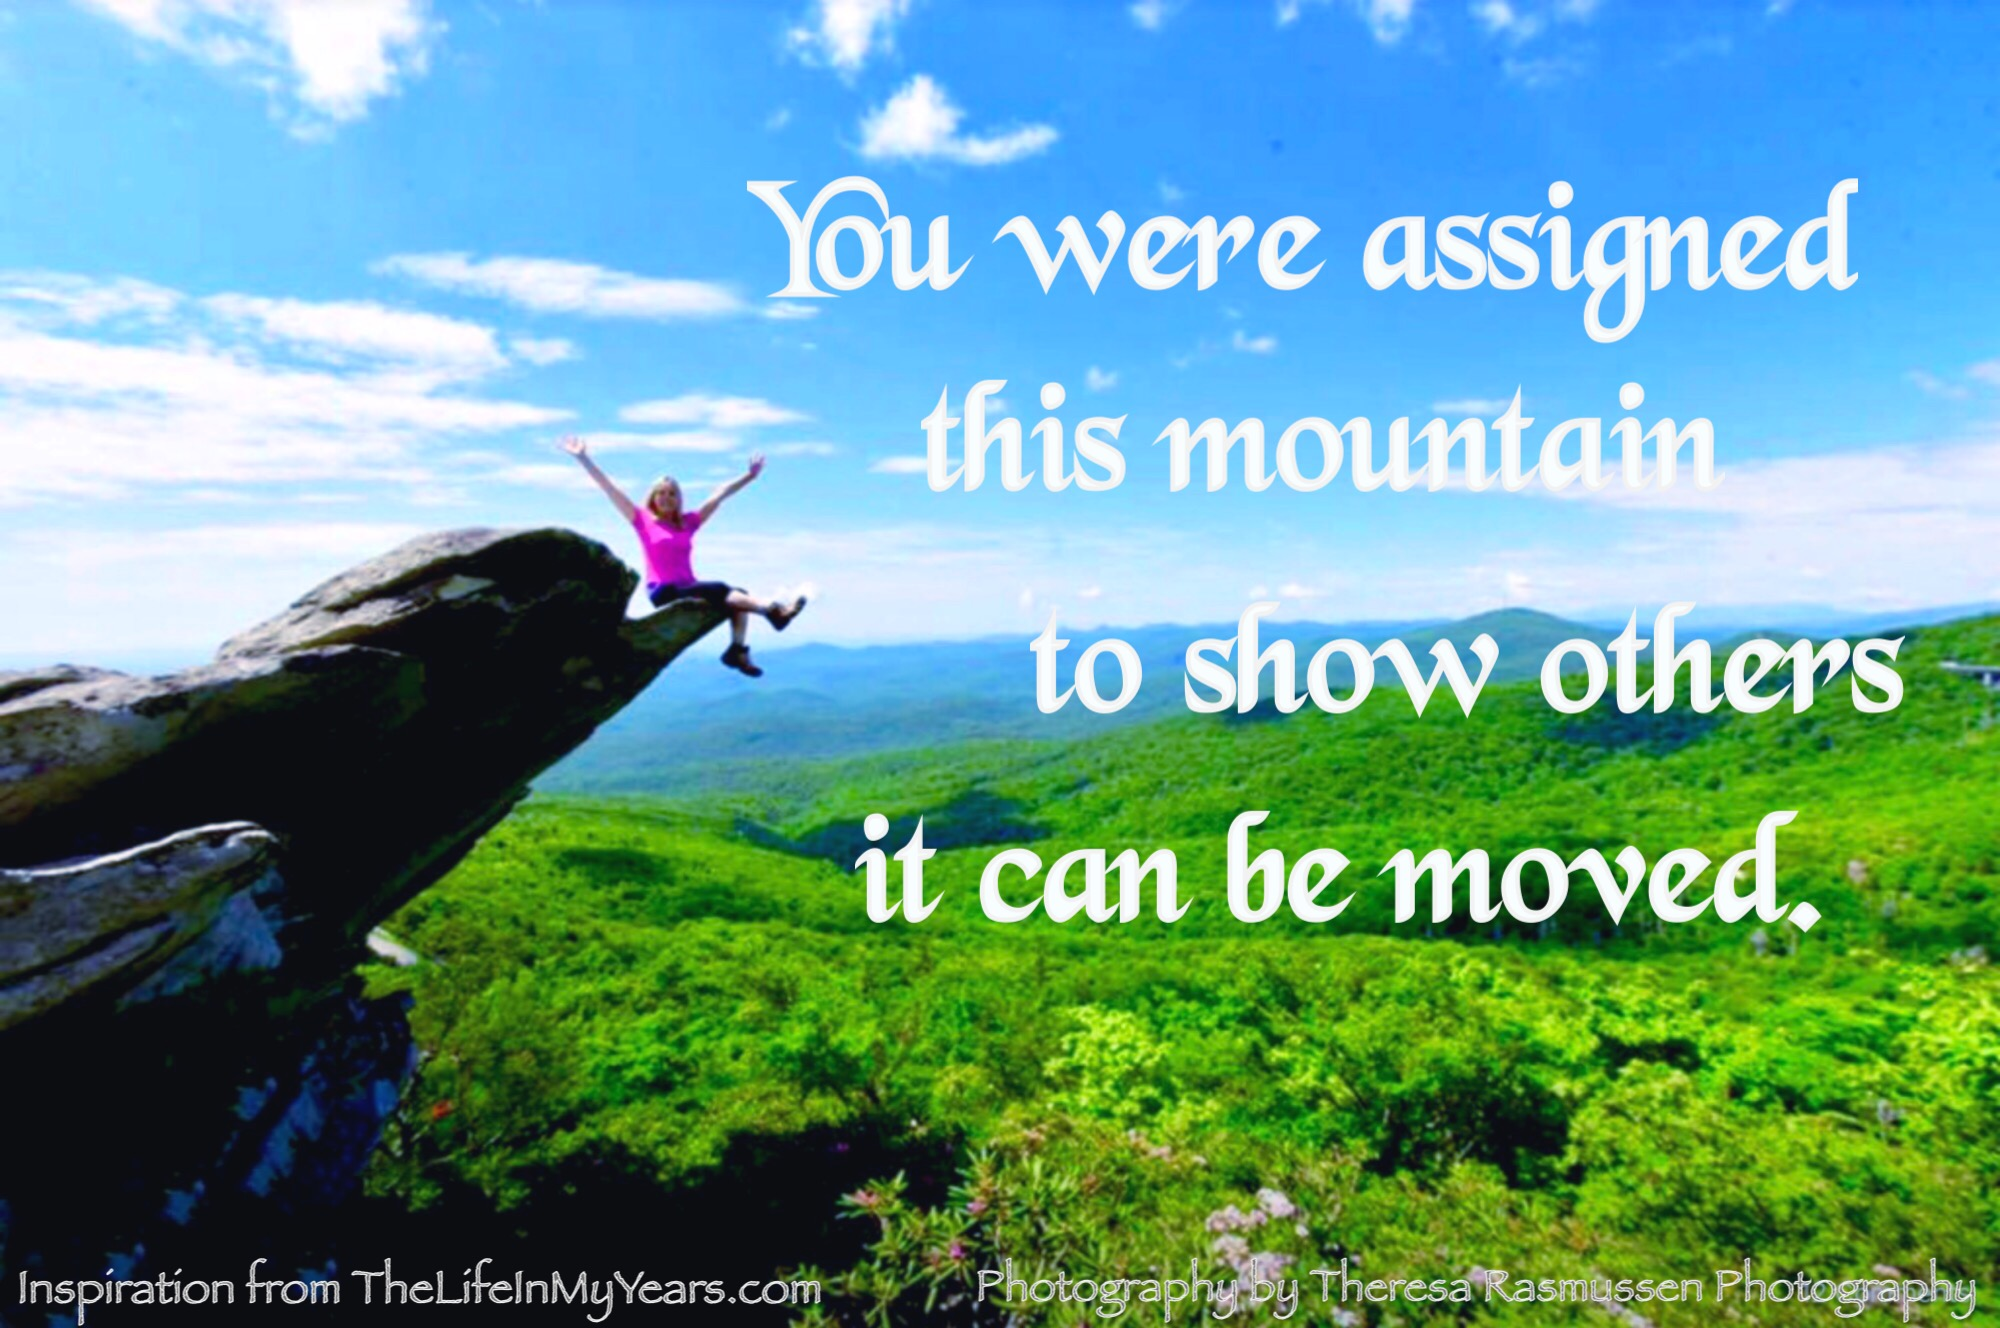 You were assigned this mountain to show others it can be moved.